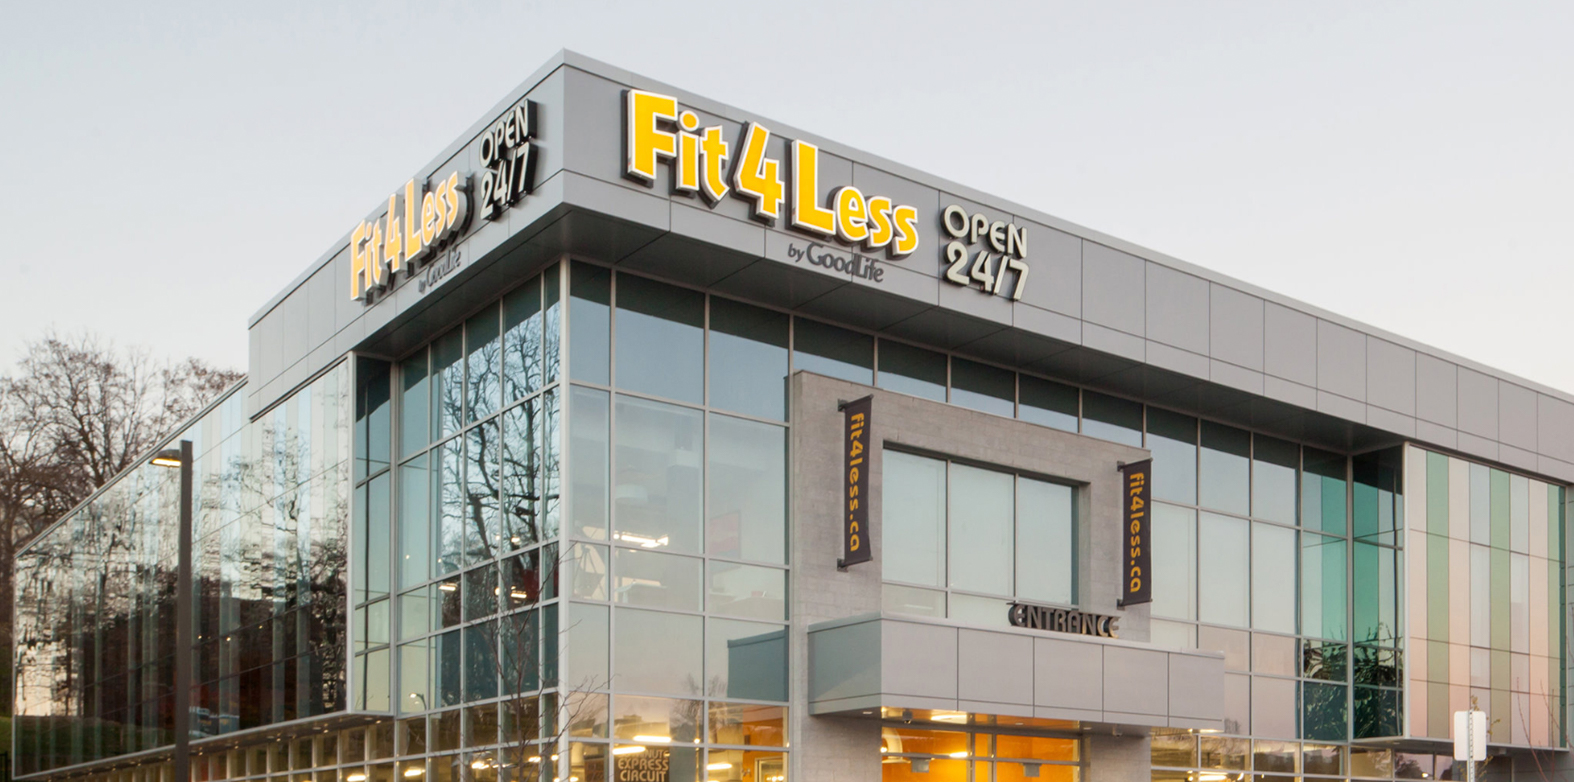 Exterior of a 24/7 Fit4Less Gym